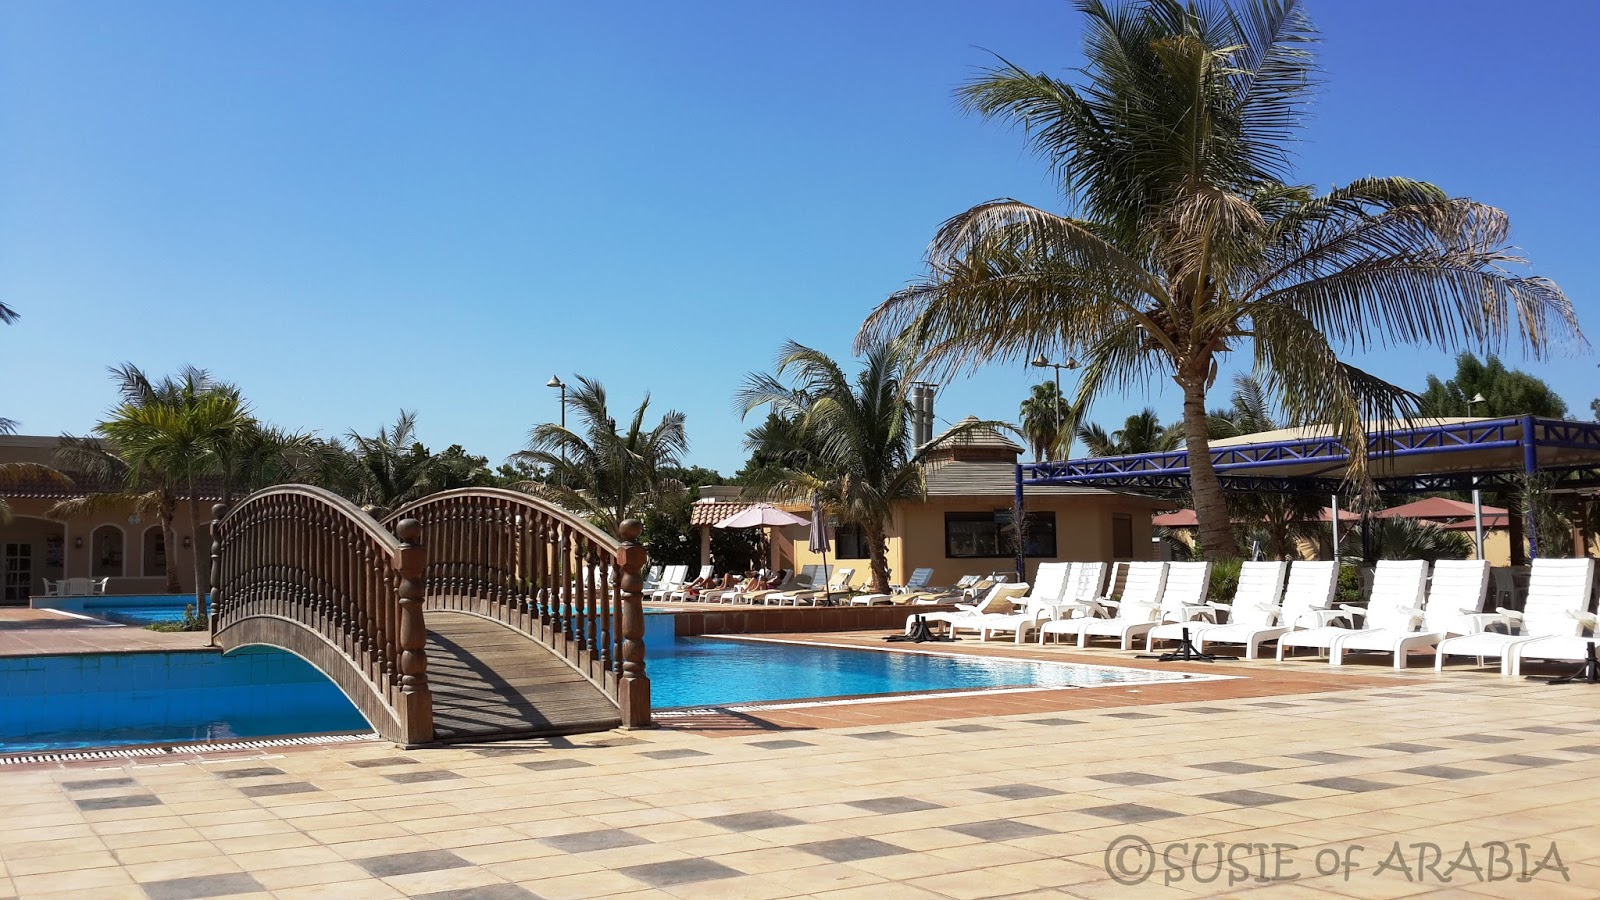 Jeddah Daily Photo: Resort Like Living - in the Compound